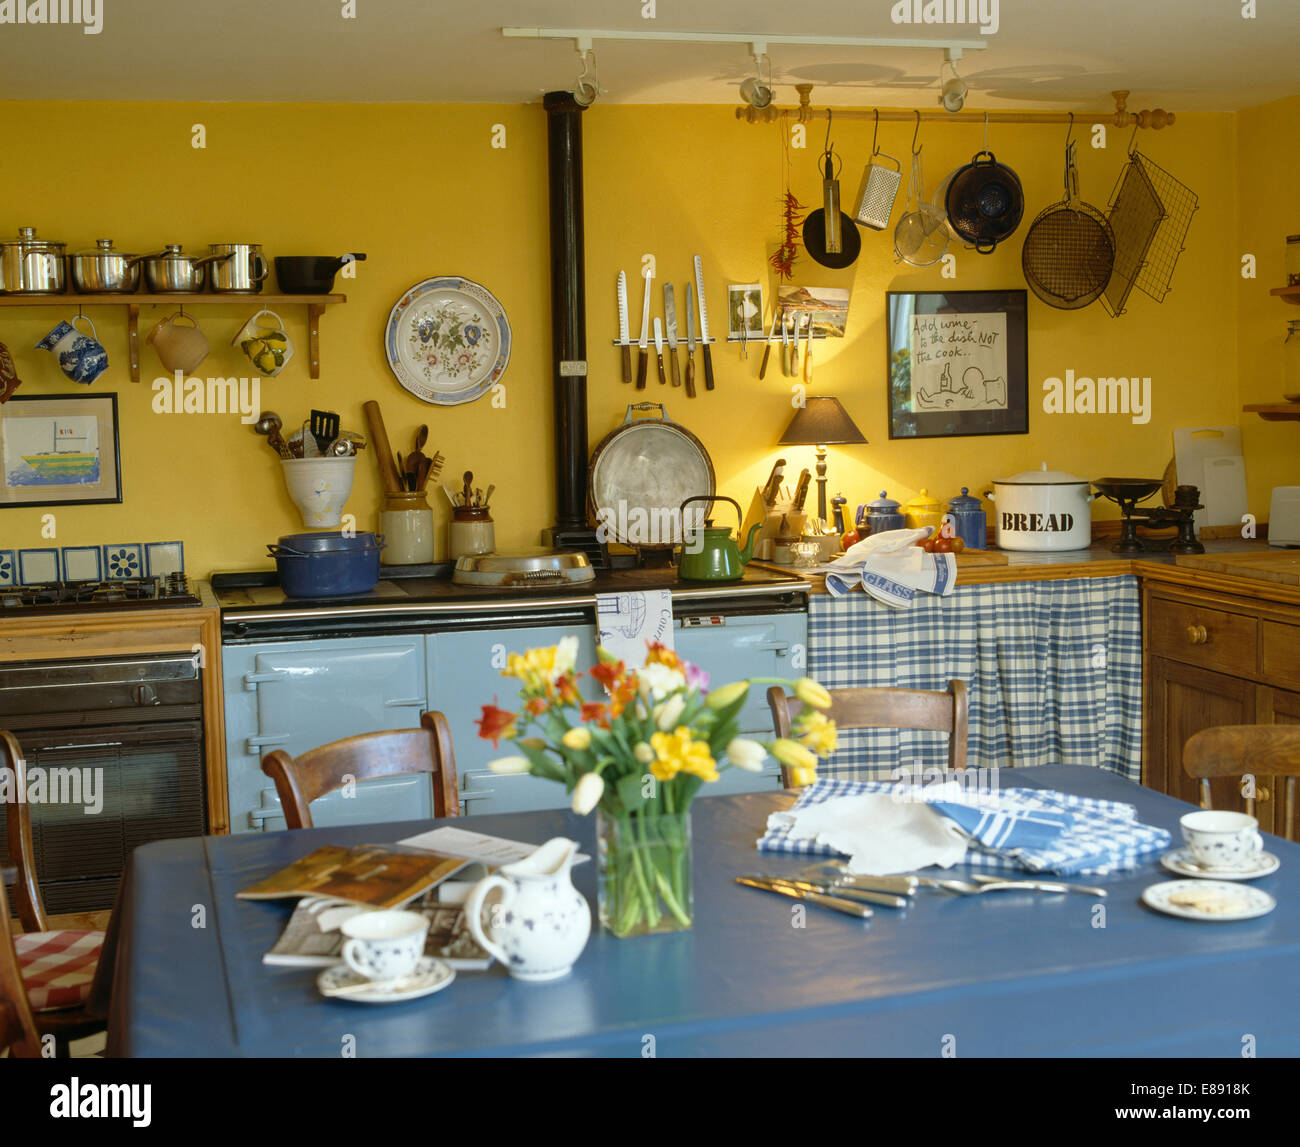 Blue plastic cloth on table in yellow country kitchen with pastel ...